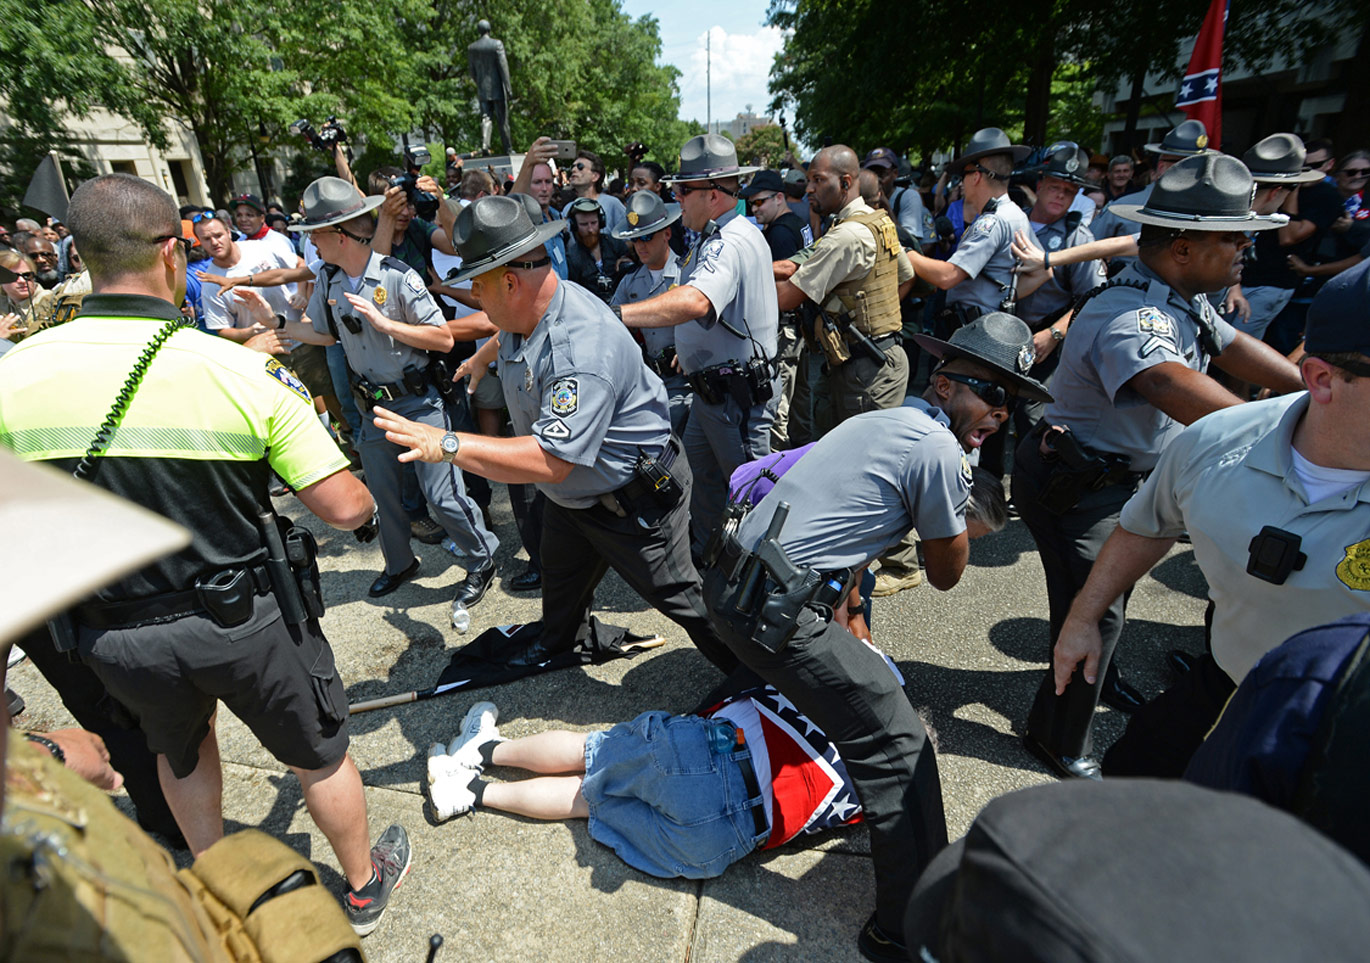 Police struggle to protect Klansmen on July 18, 2015.